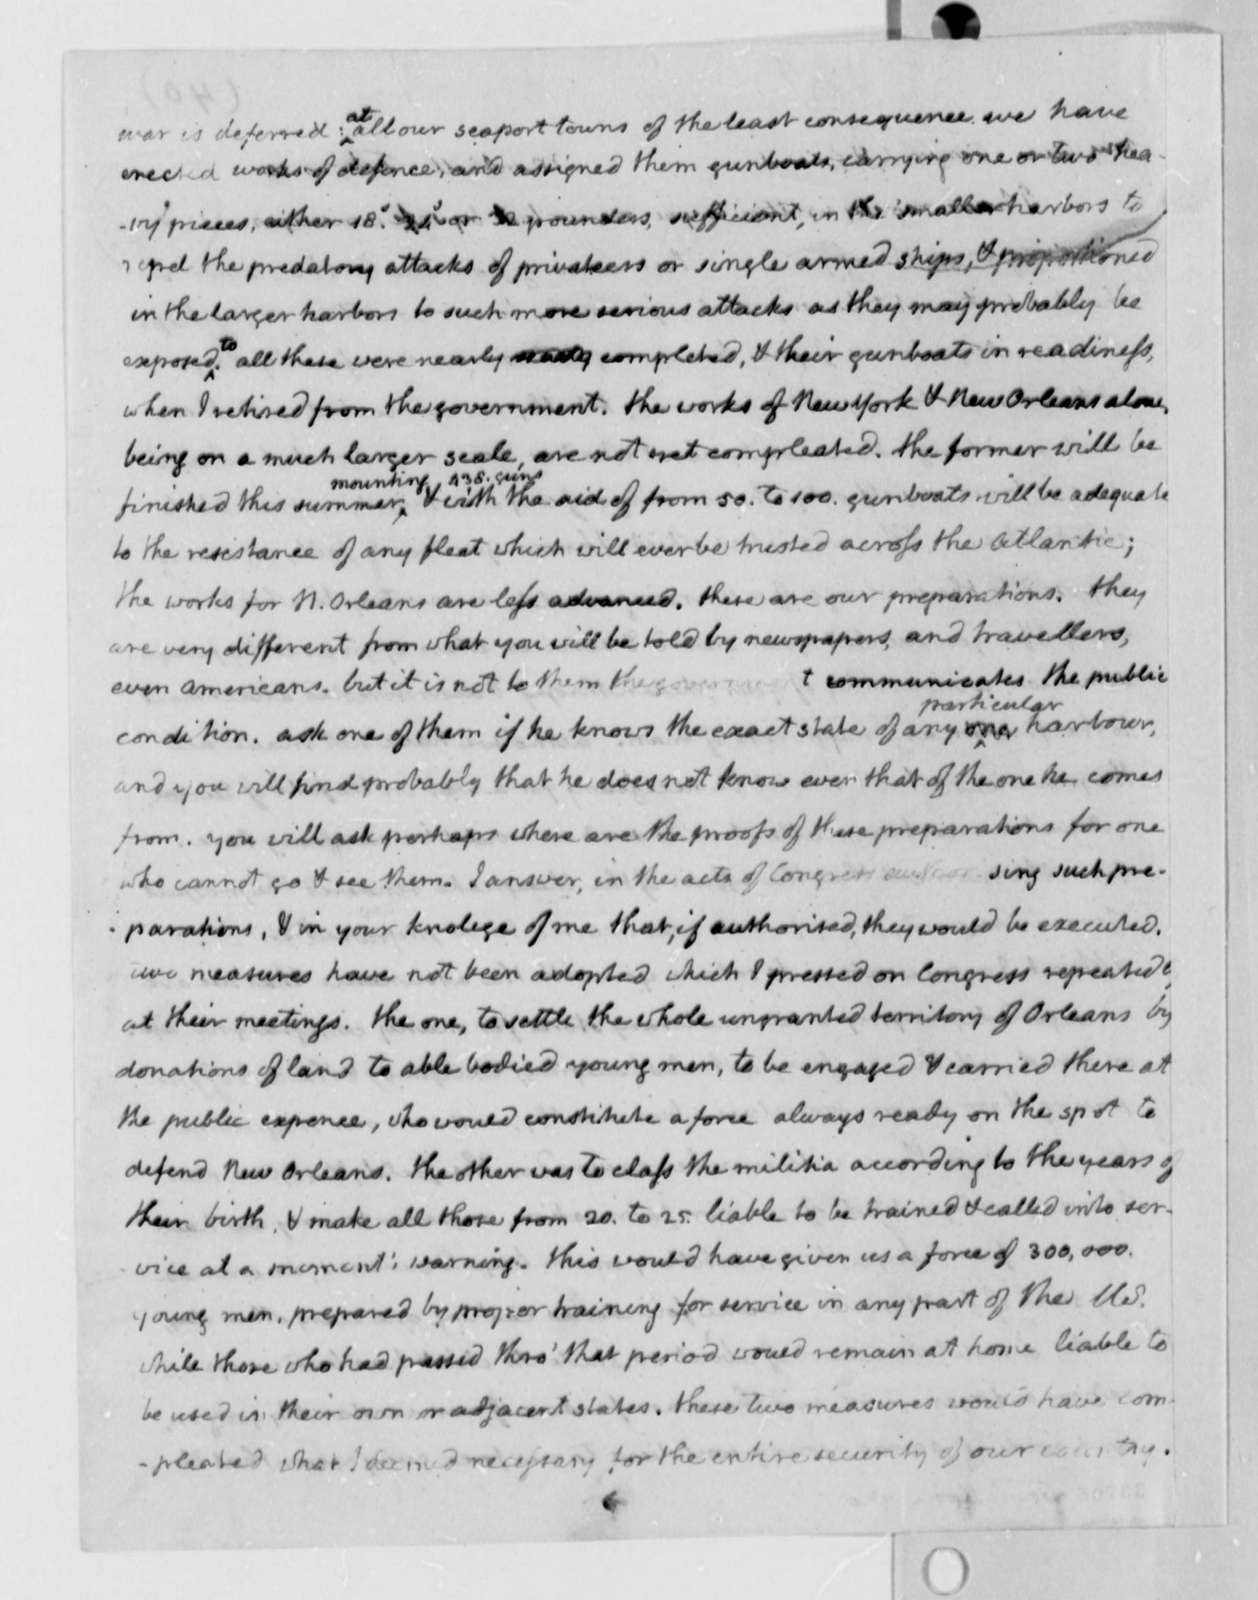 Thomas Jefferson to Thaddeus Kosciuszko, February 26, 1810